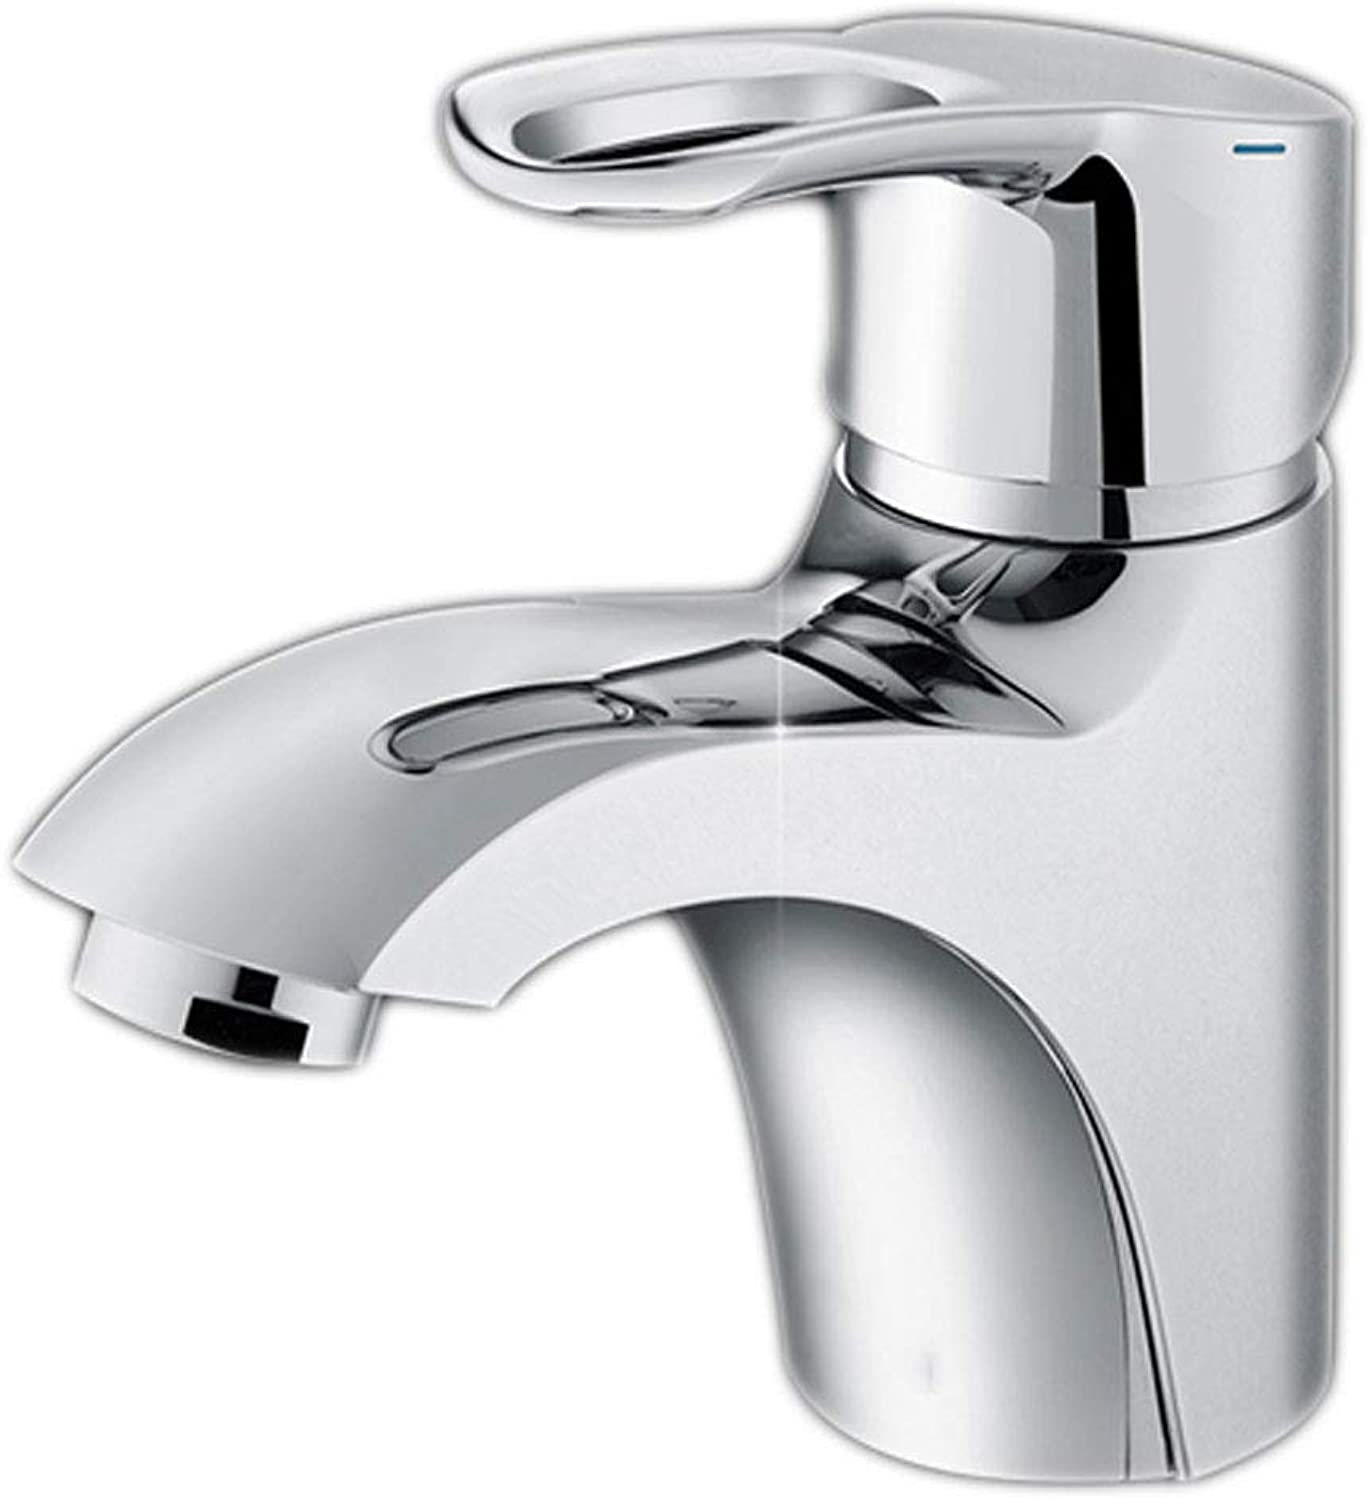 Wyzdq Kitchen Sink, Toilet, Single Hole, Basin Head, Bathroom Bath Basin, washbasin, washbasin, hot and Cold Water Faucet.